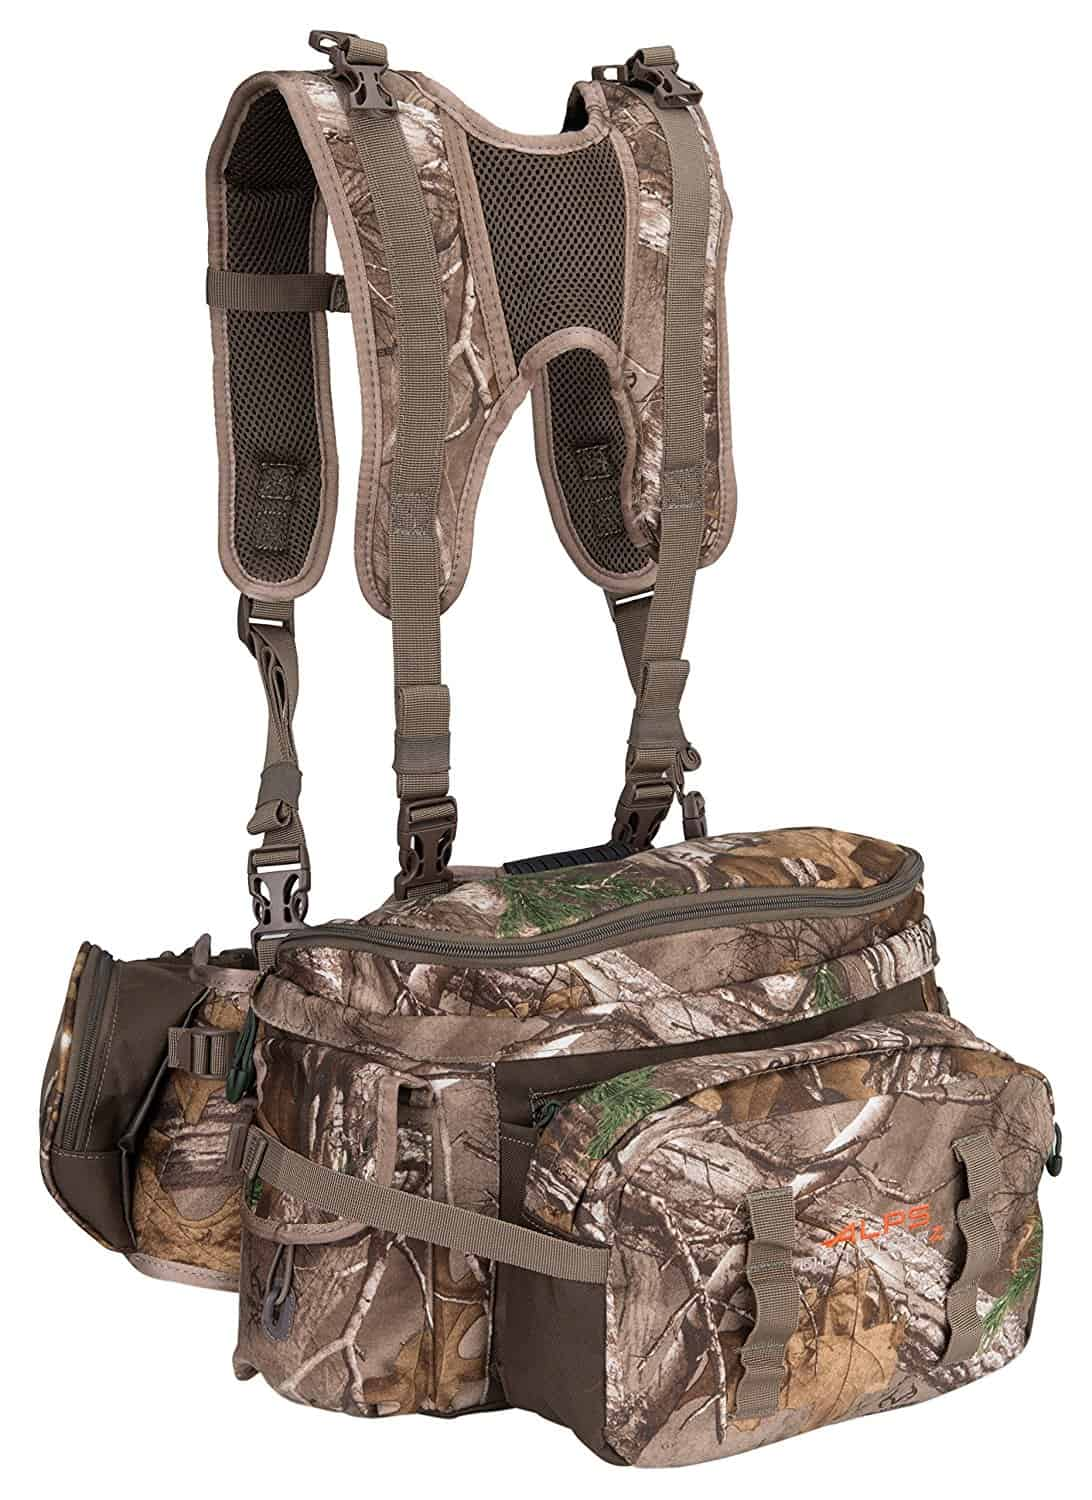 ALPS OutdoorZ Pathfinder Pack Review